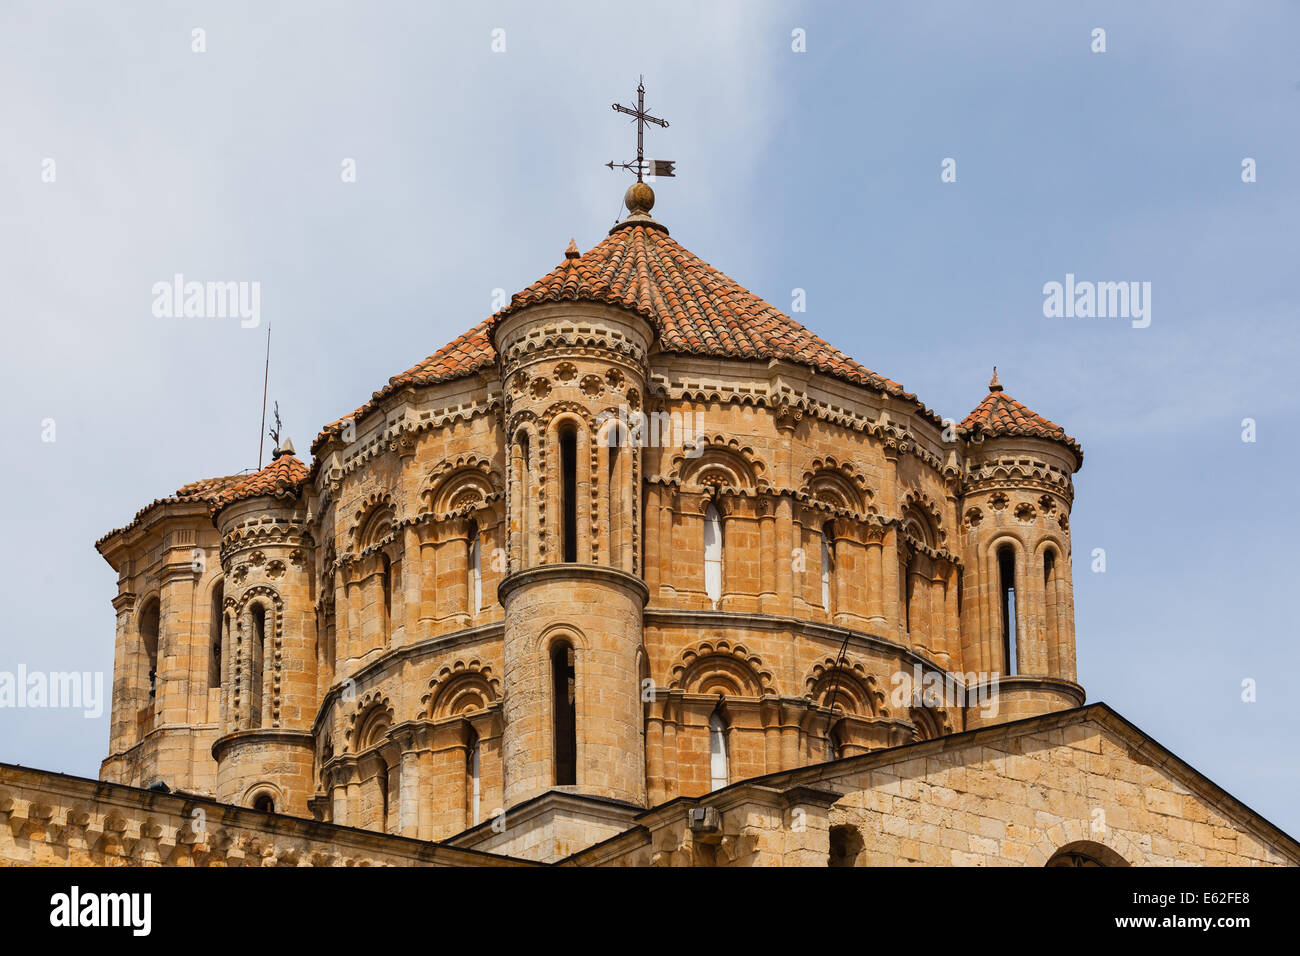 Closeup view of great romanesque dome in the Collegiate Church in the town of Toro , Province of Zamora , Spain Stock Photo